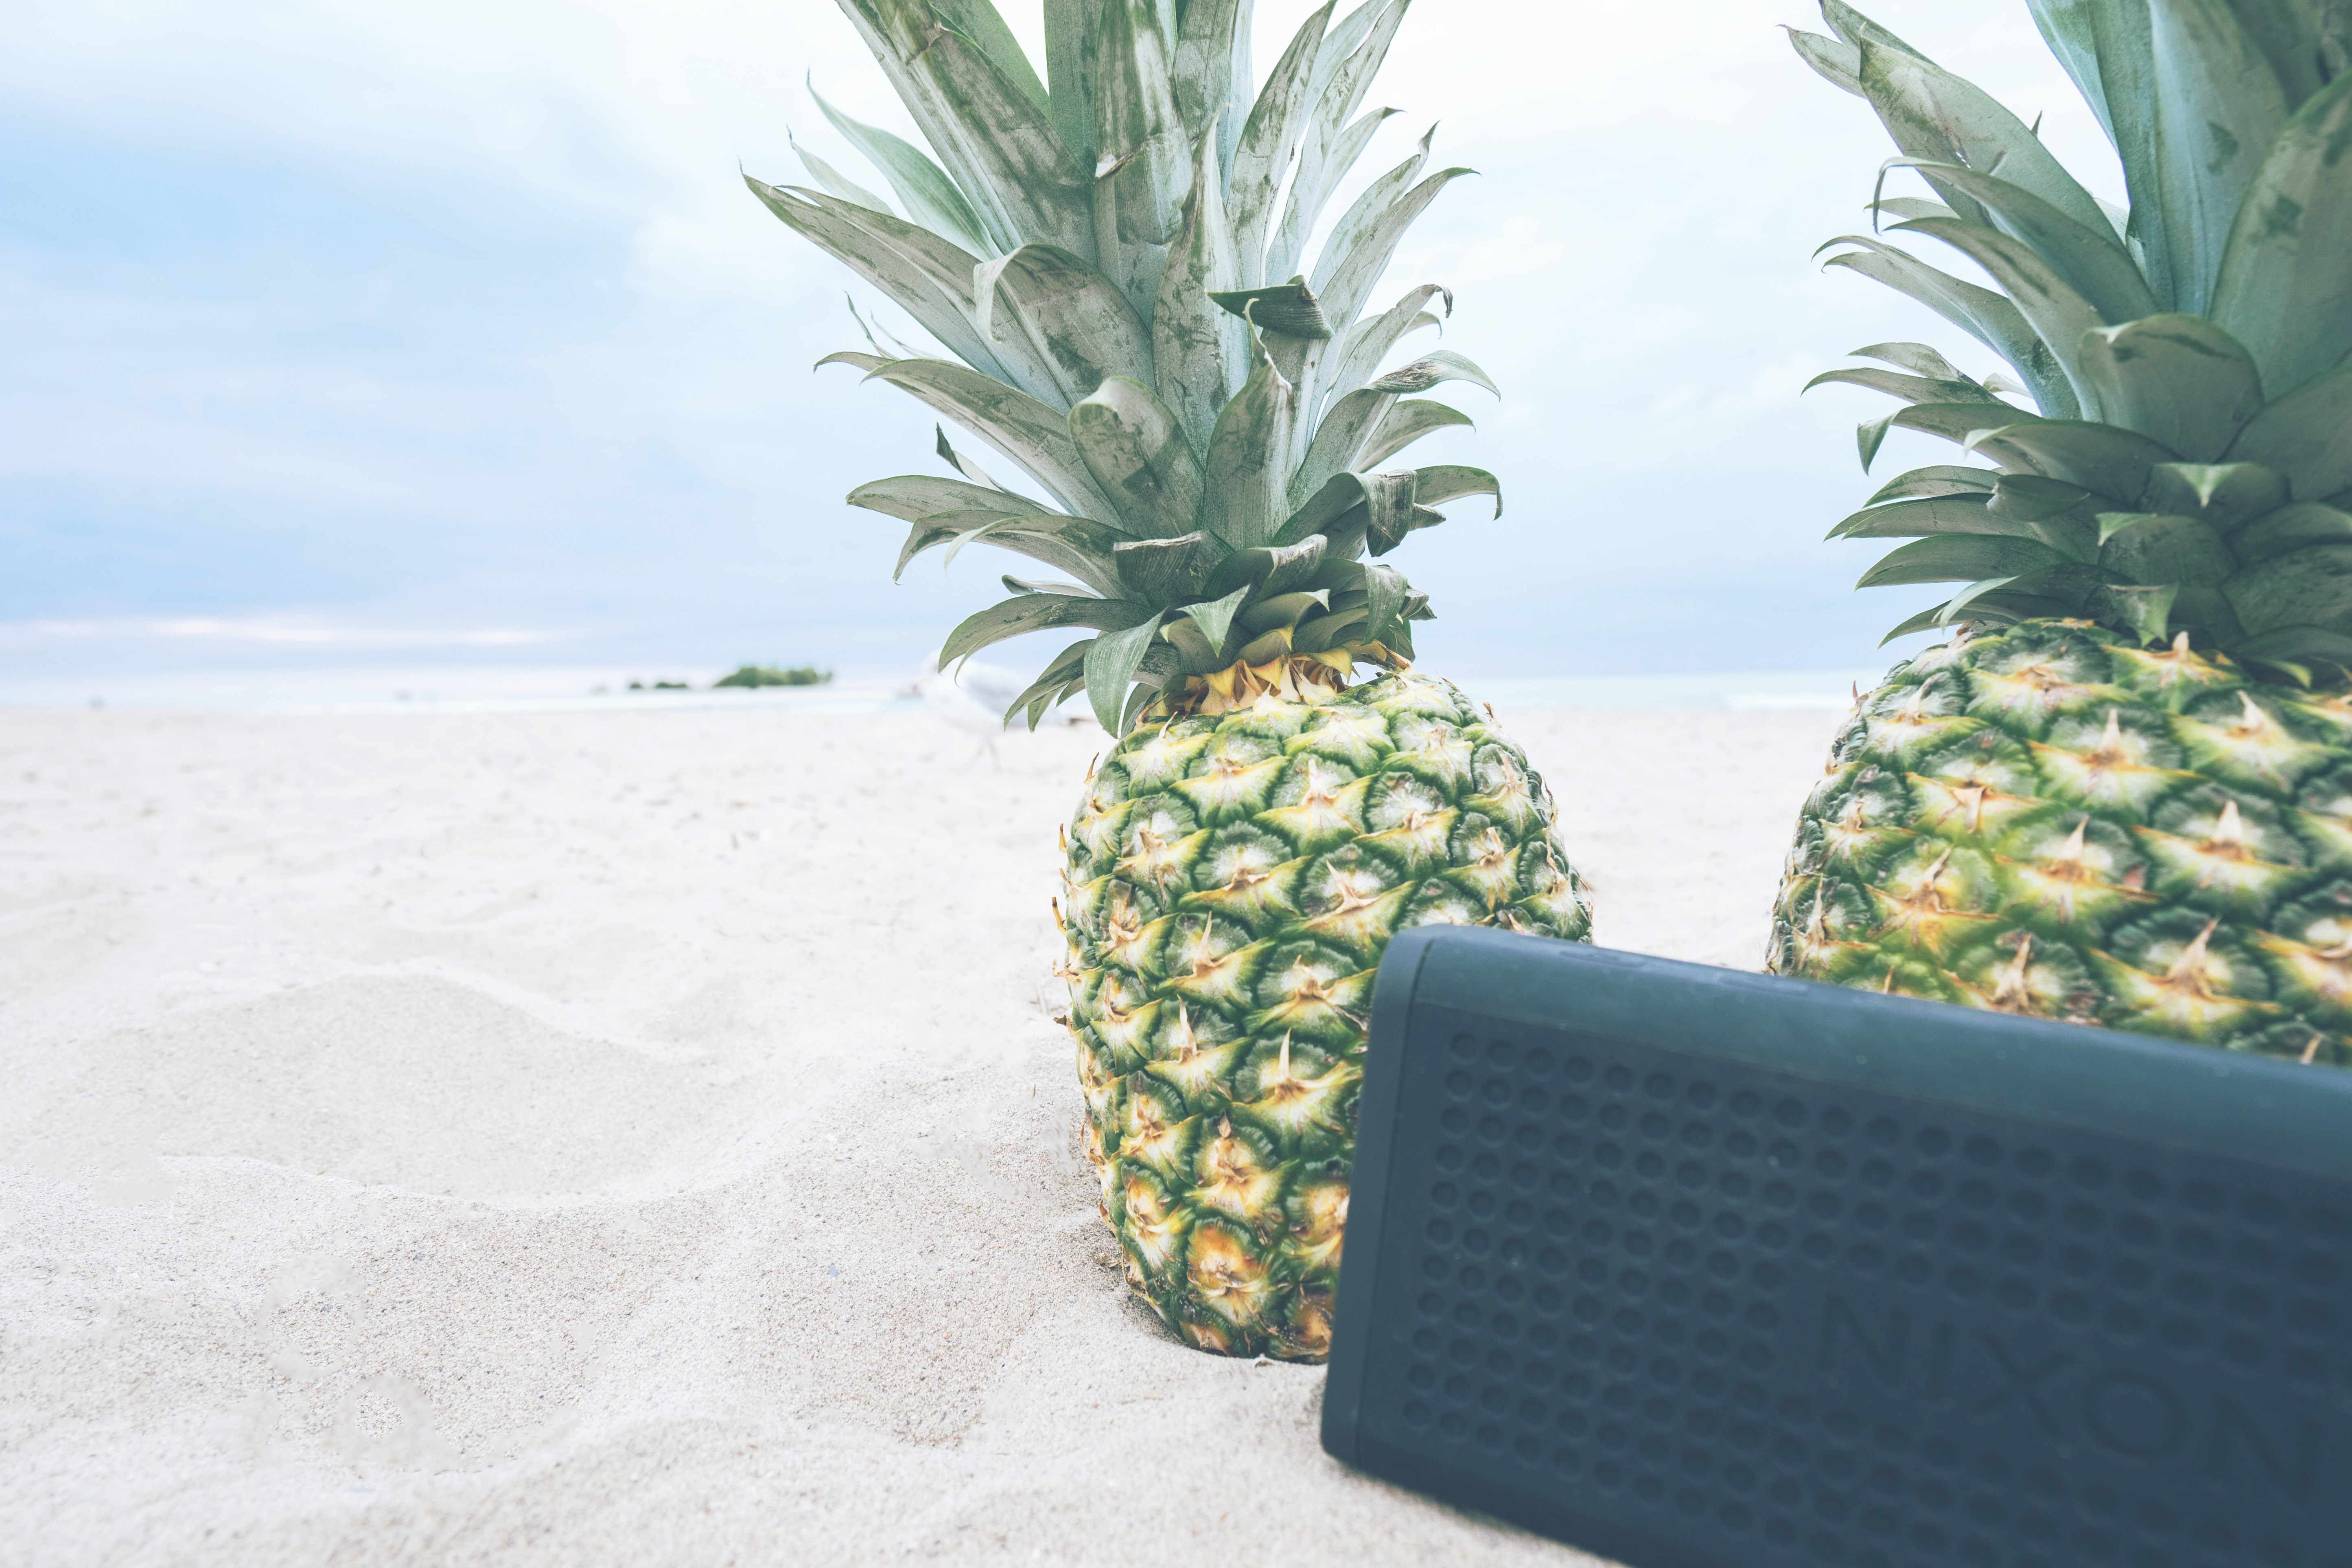 rectangular black Nixon portable Bluetooth speaker near two pineapples